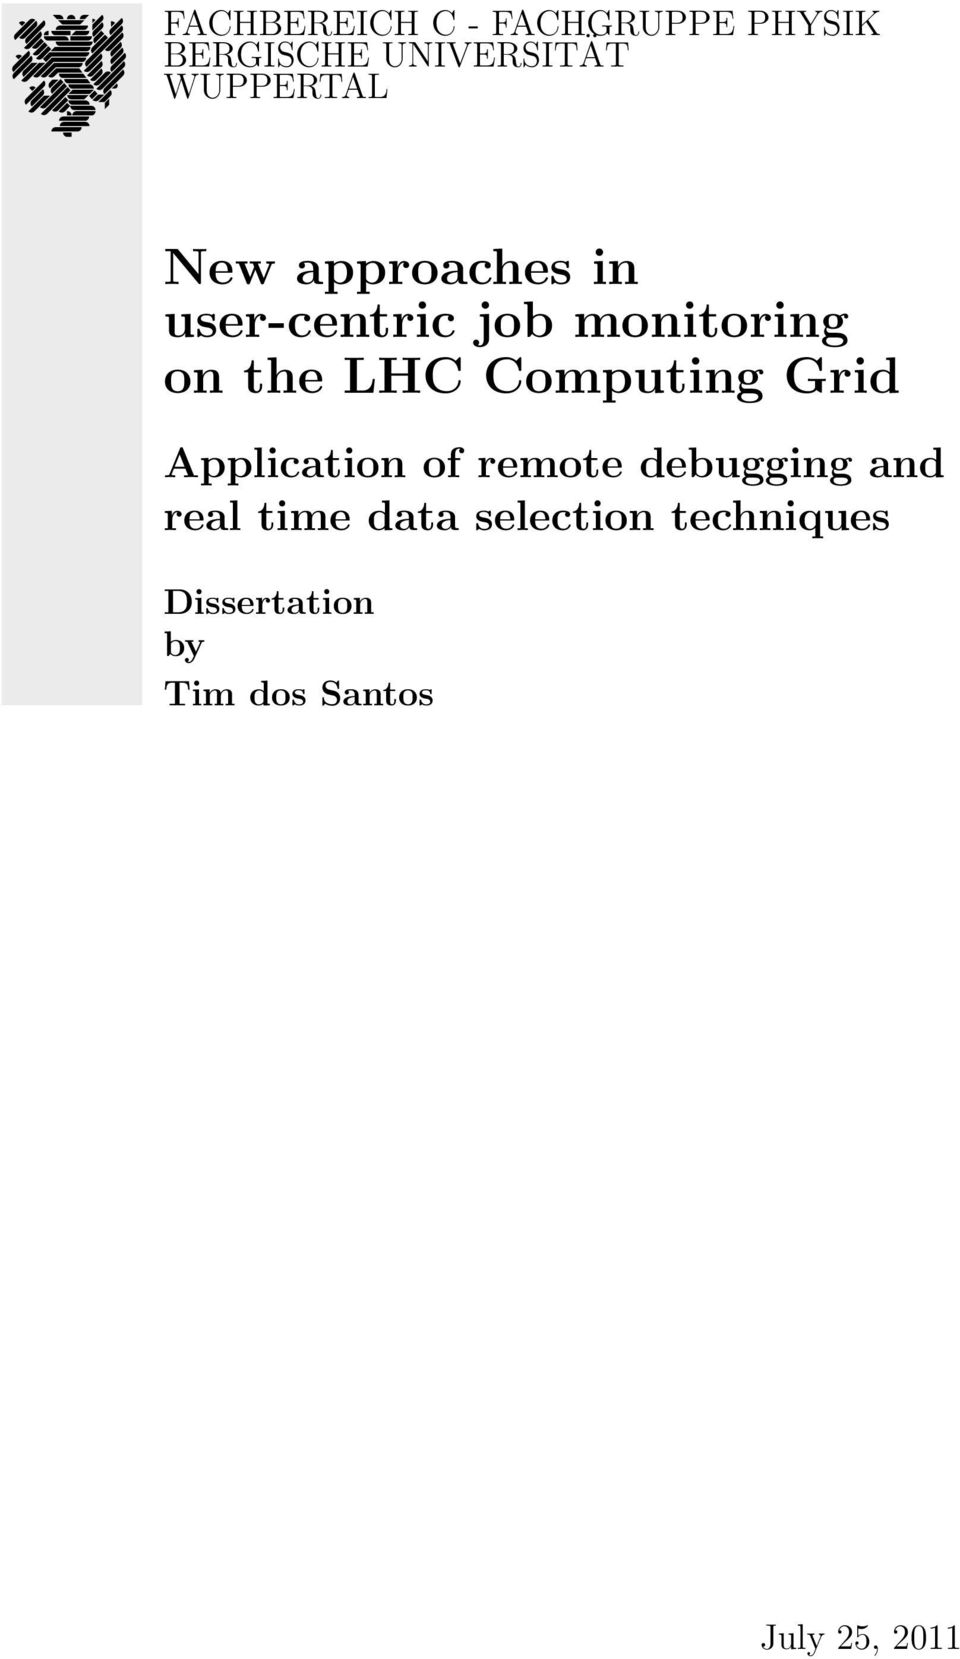 LHC Computing Grid Application of remote debugging and real